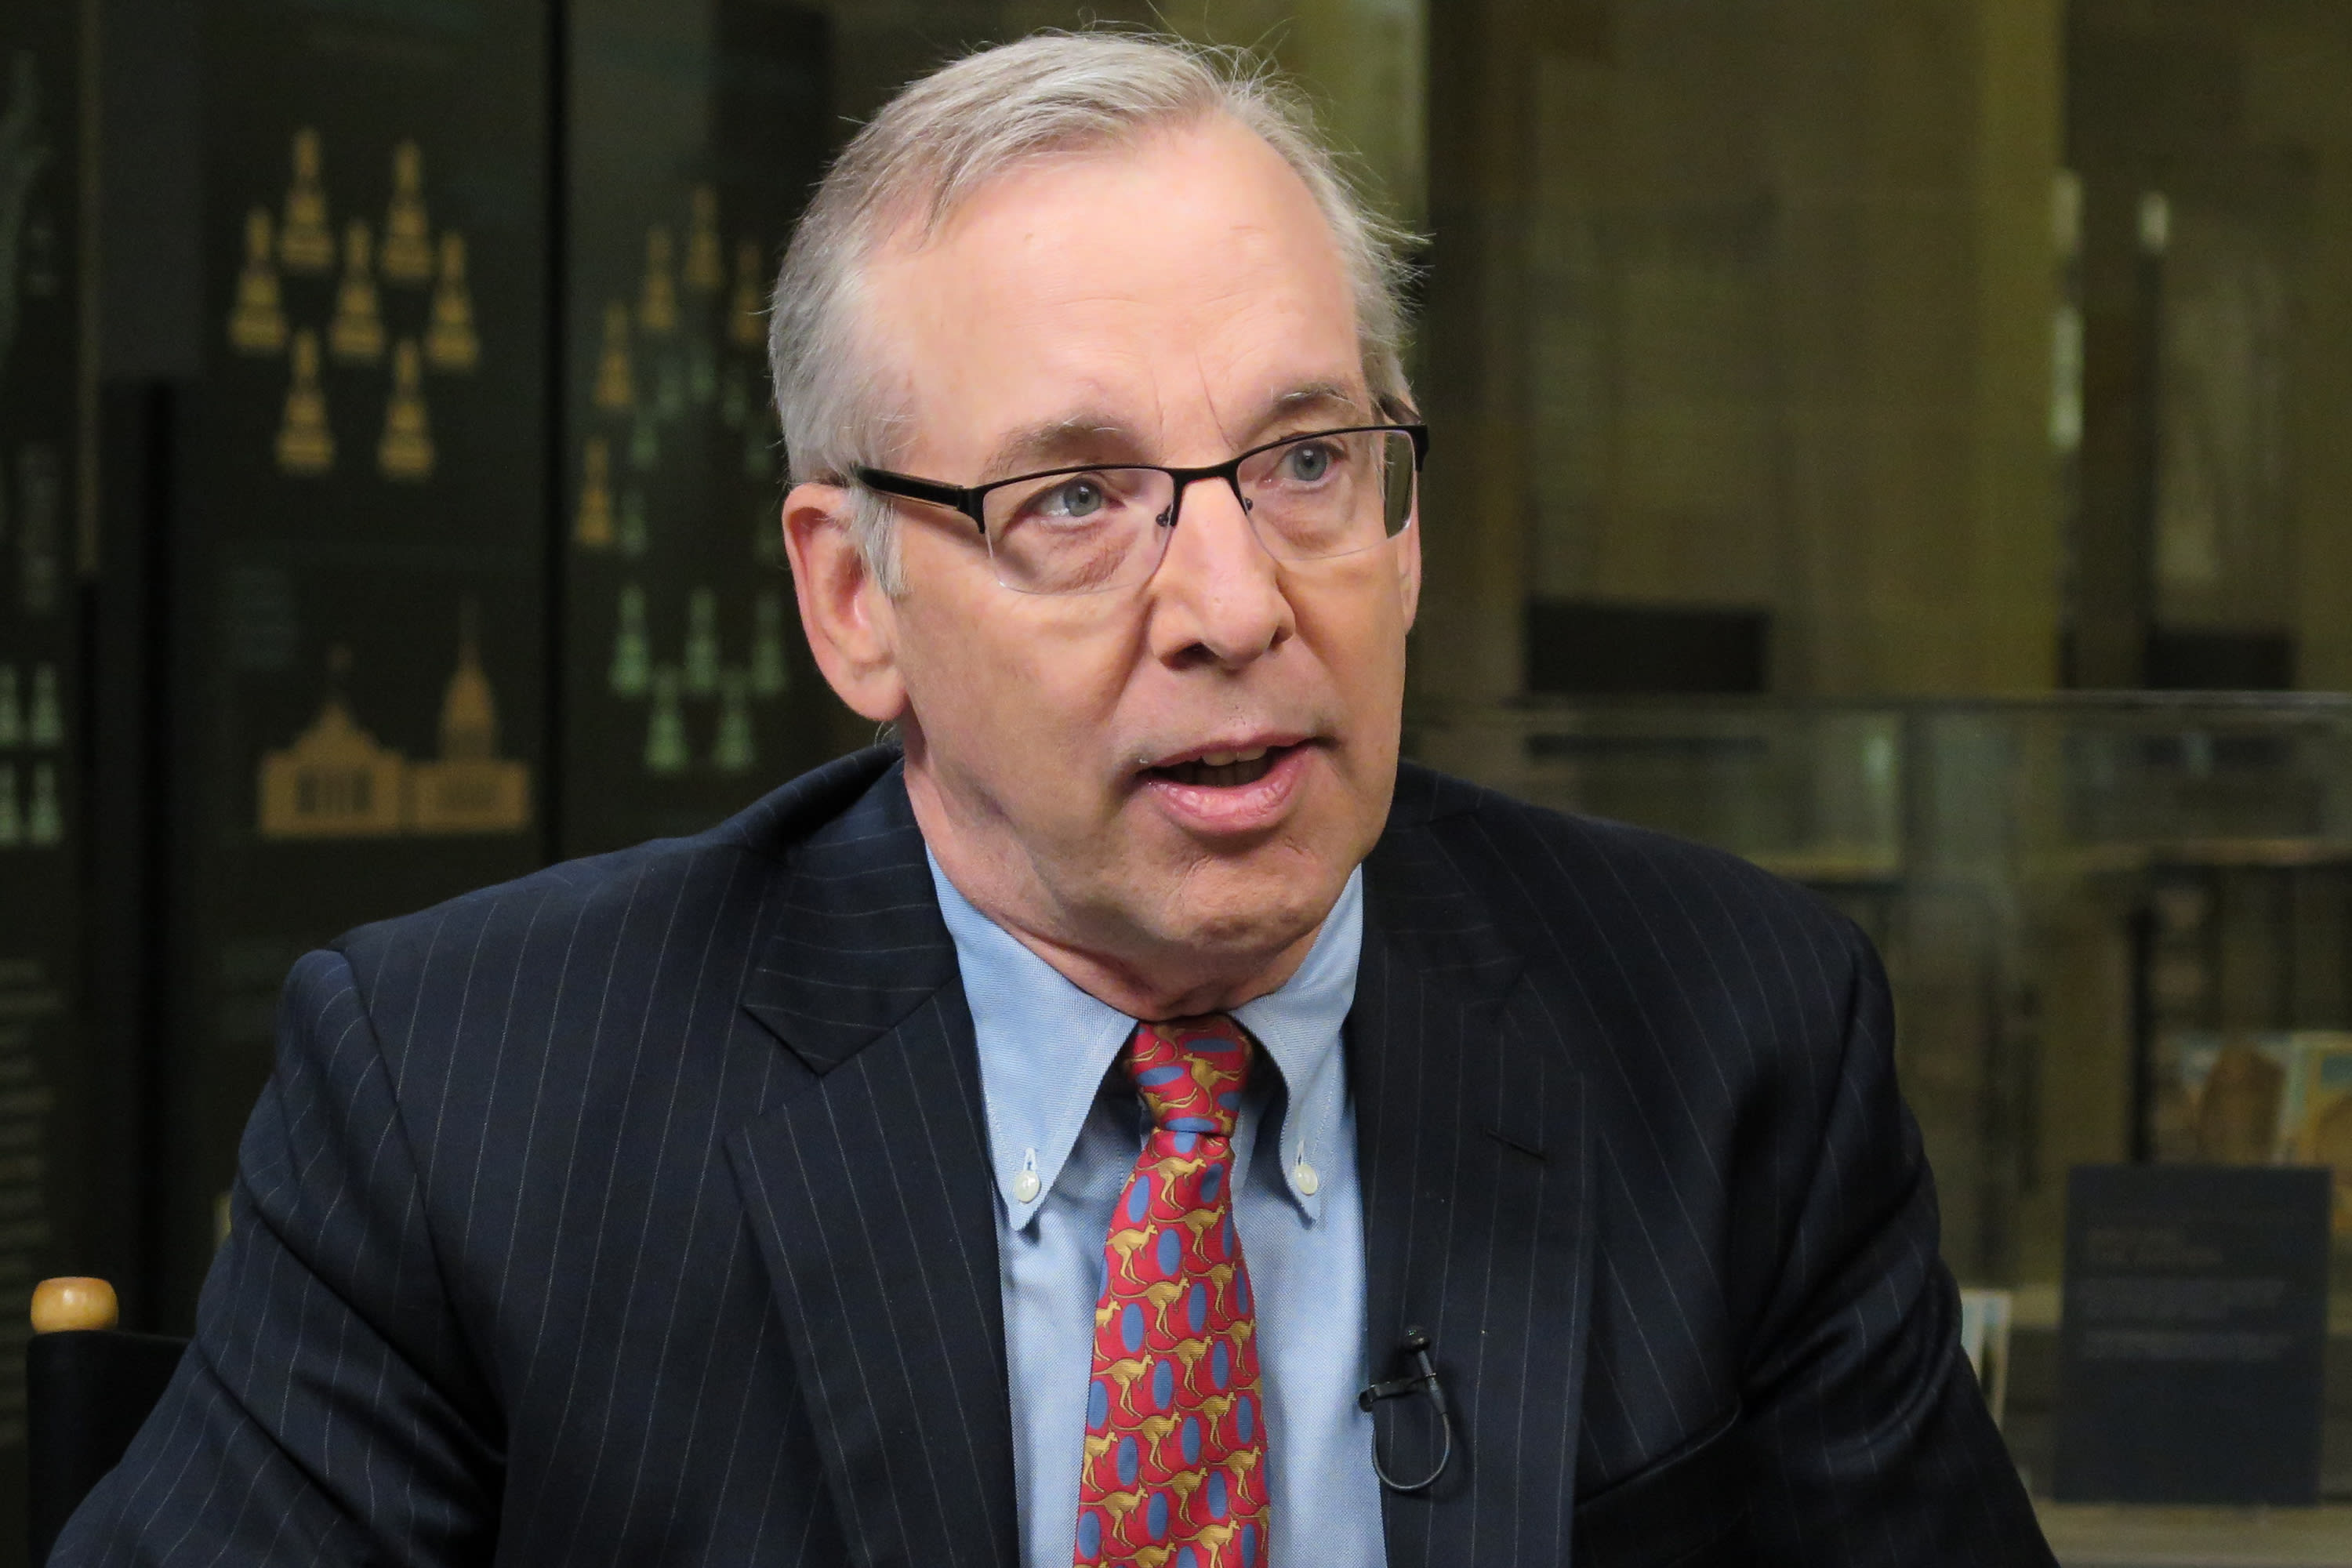 Dudley encourages the Fed not 'to play along' with Trump's trade war